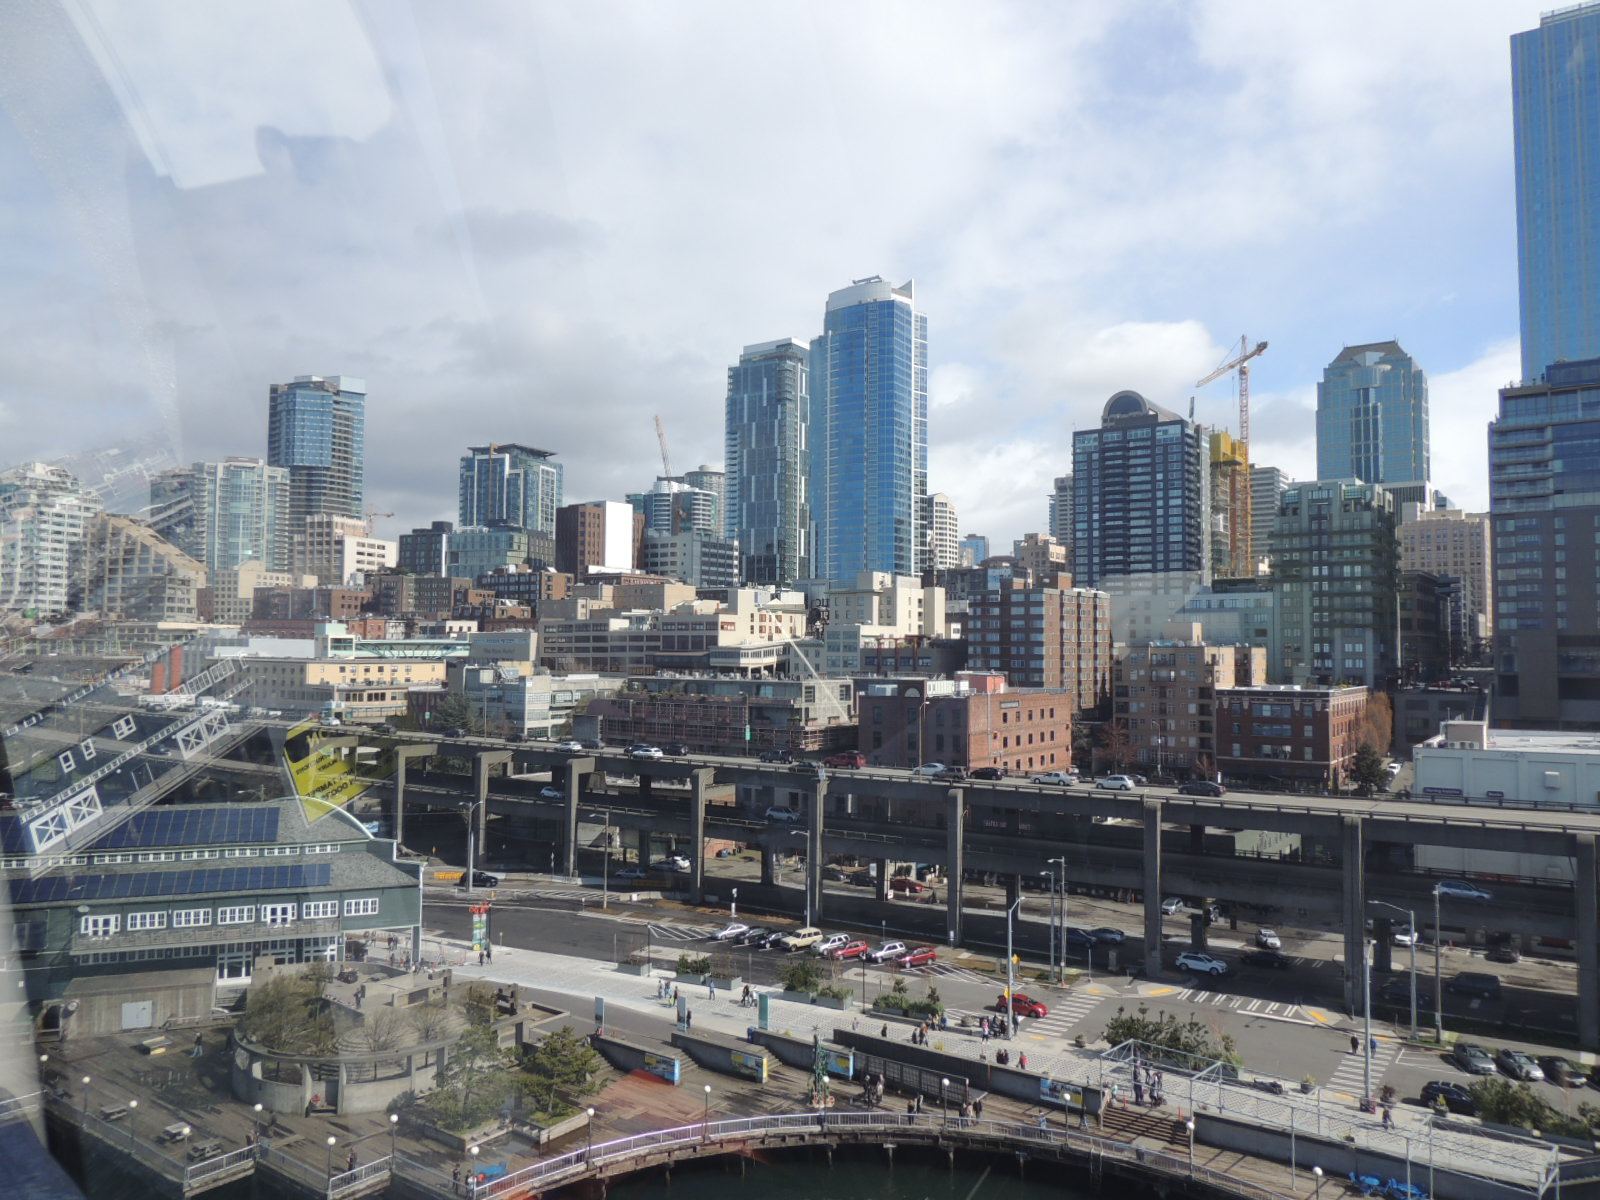 View of Seattle from Seattle's Great Wheel